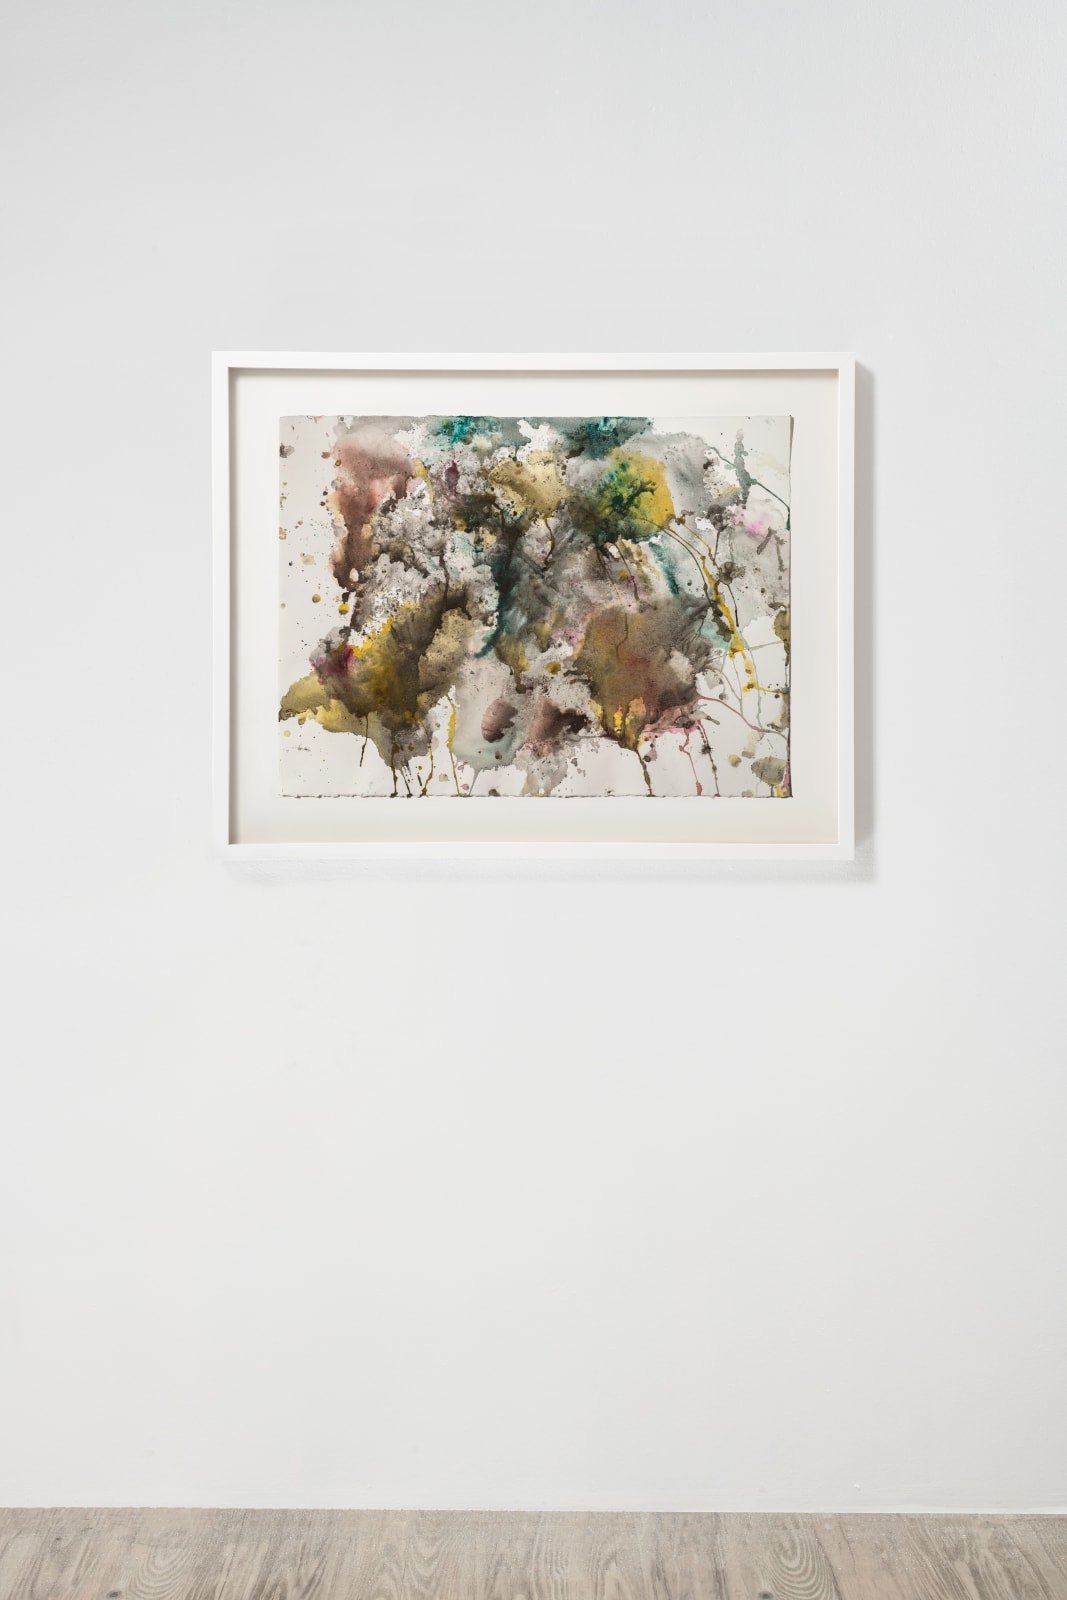 Michele Colburn Fallout, 2020 Gunpowder and watercolors on Arches paper with deckled edges 55.9 x 76.2 cm, 22 x 30 in. (Frame not included) Photo: Lee Stalsworth